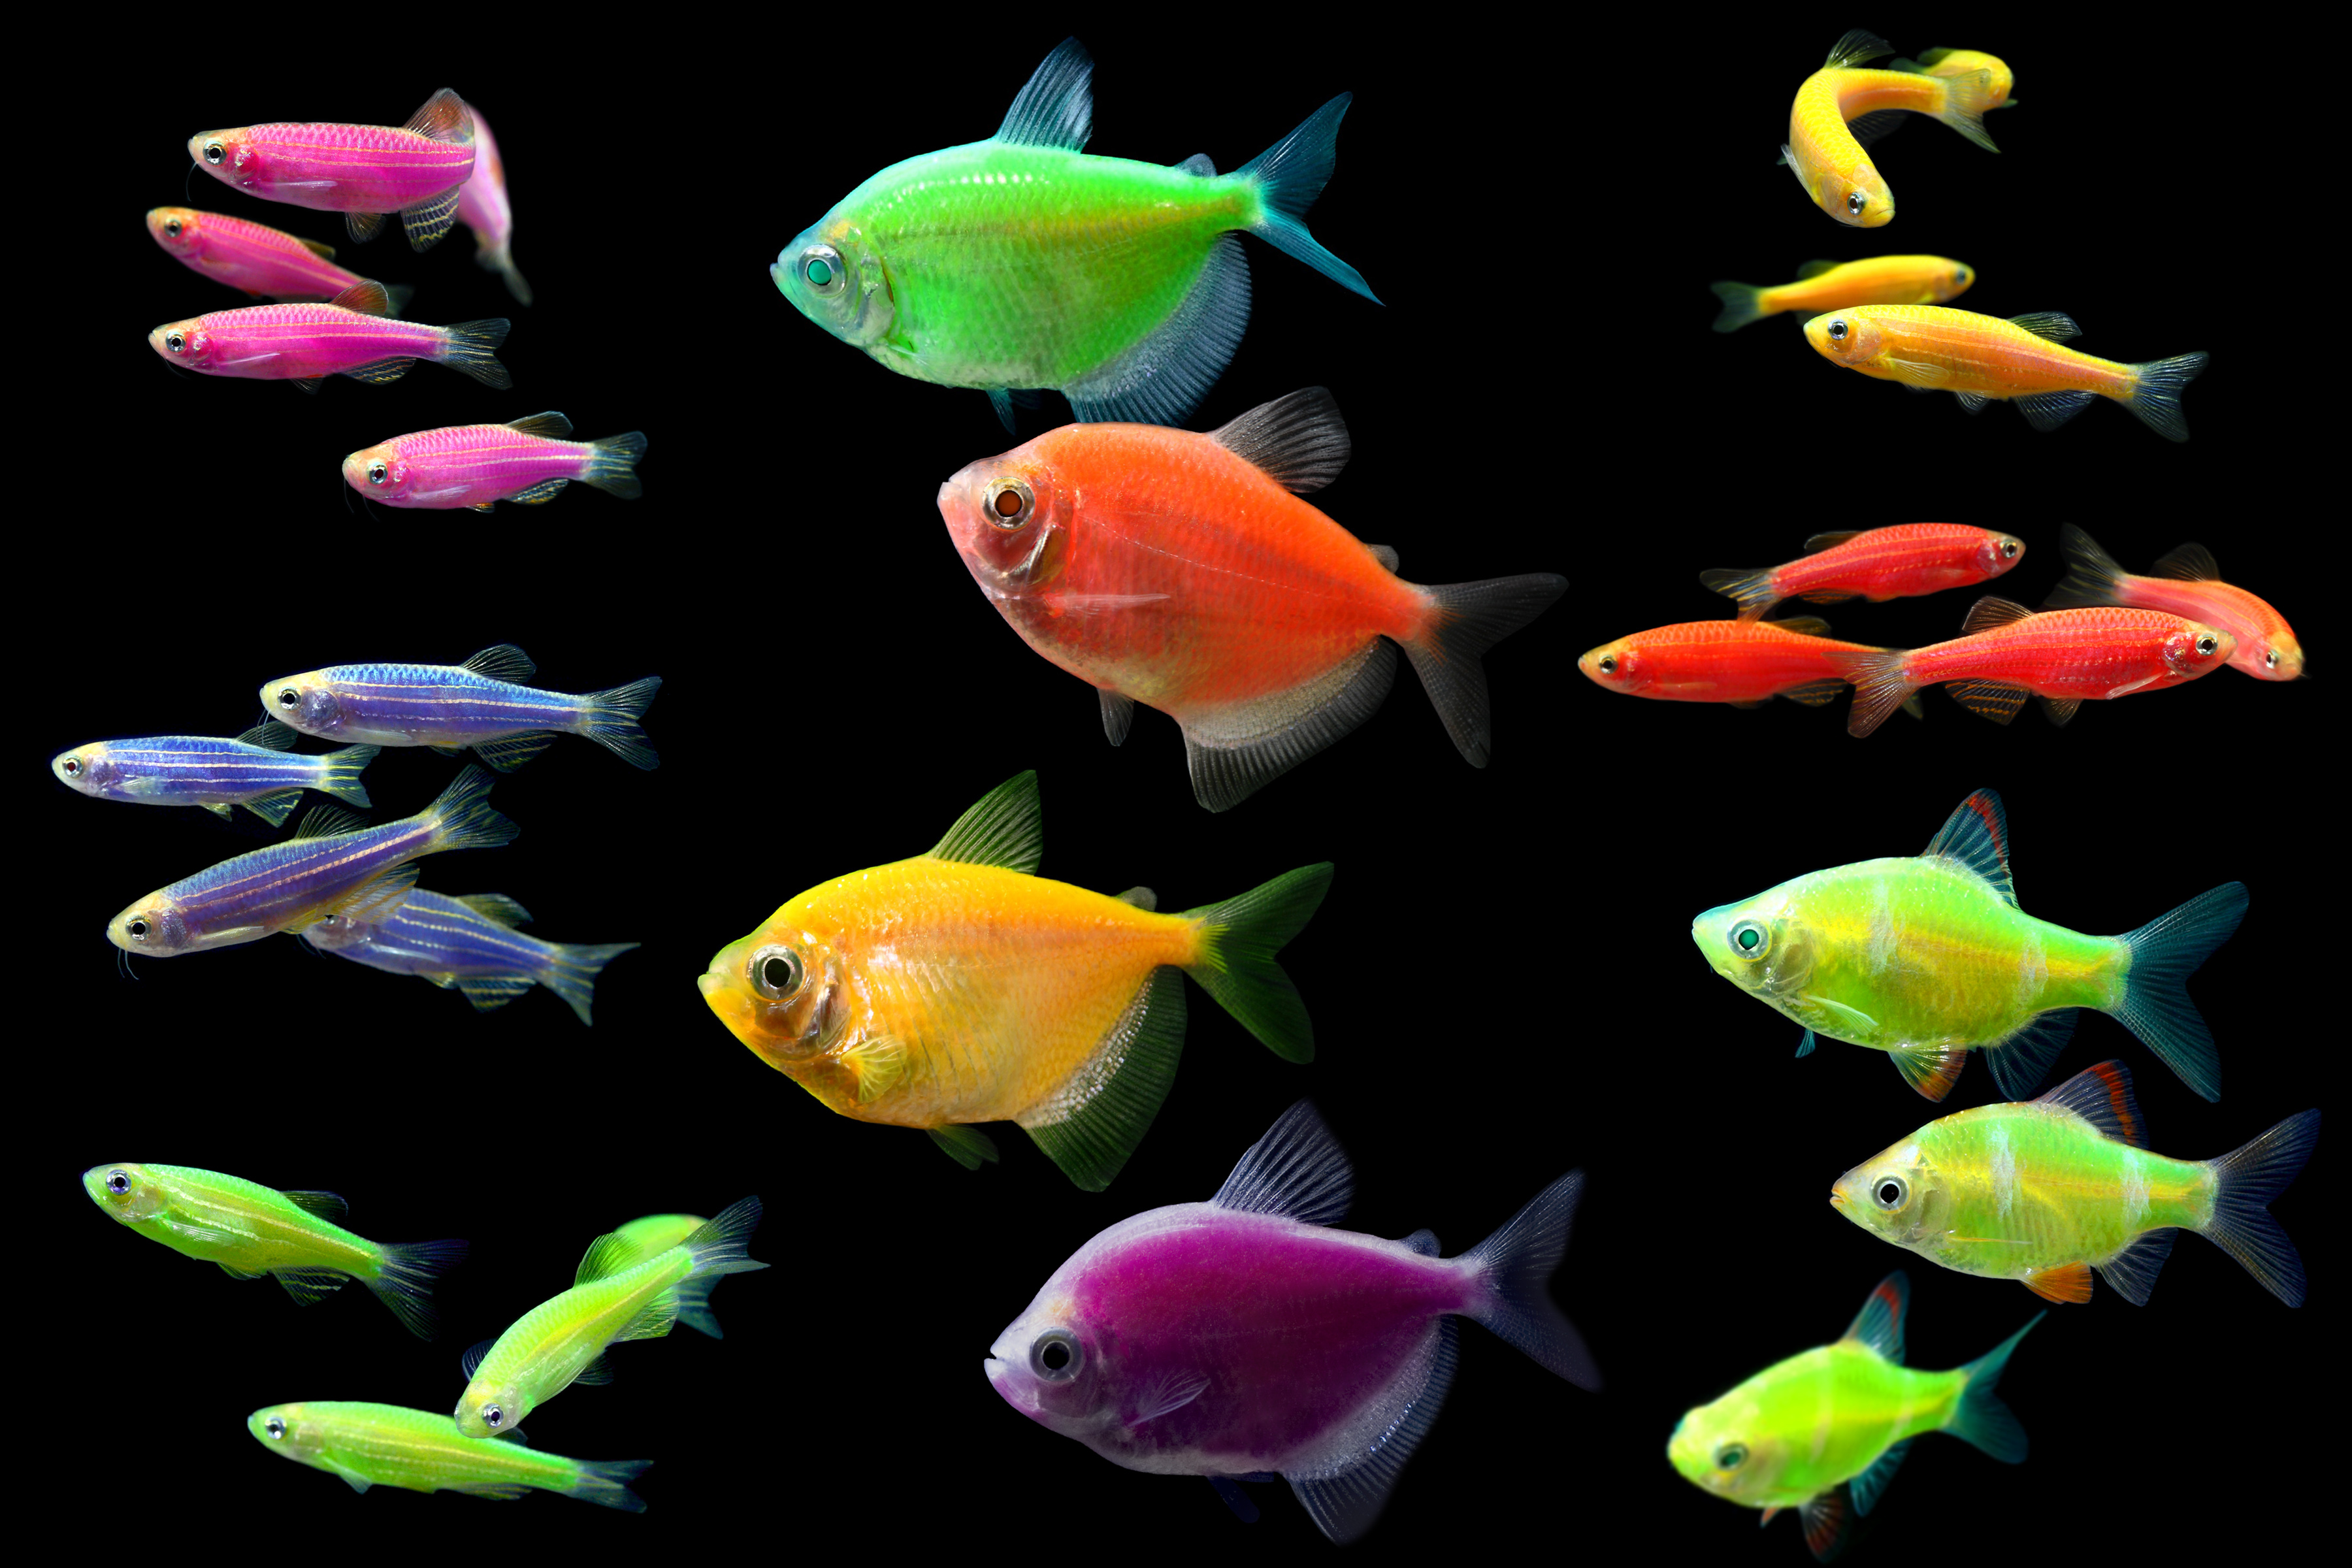 How to pick and care for pet fish wishforpets for Small fish pictures